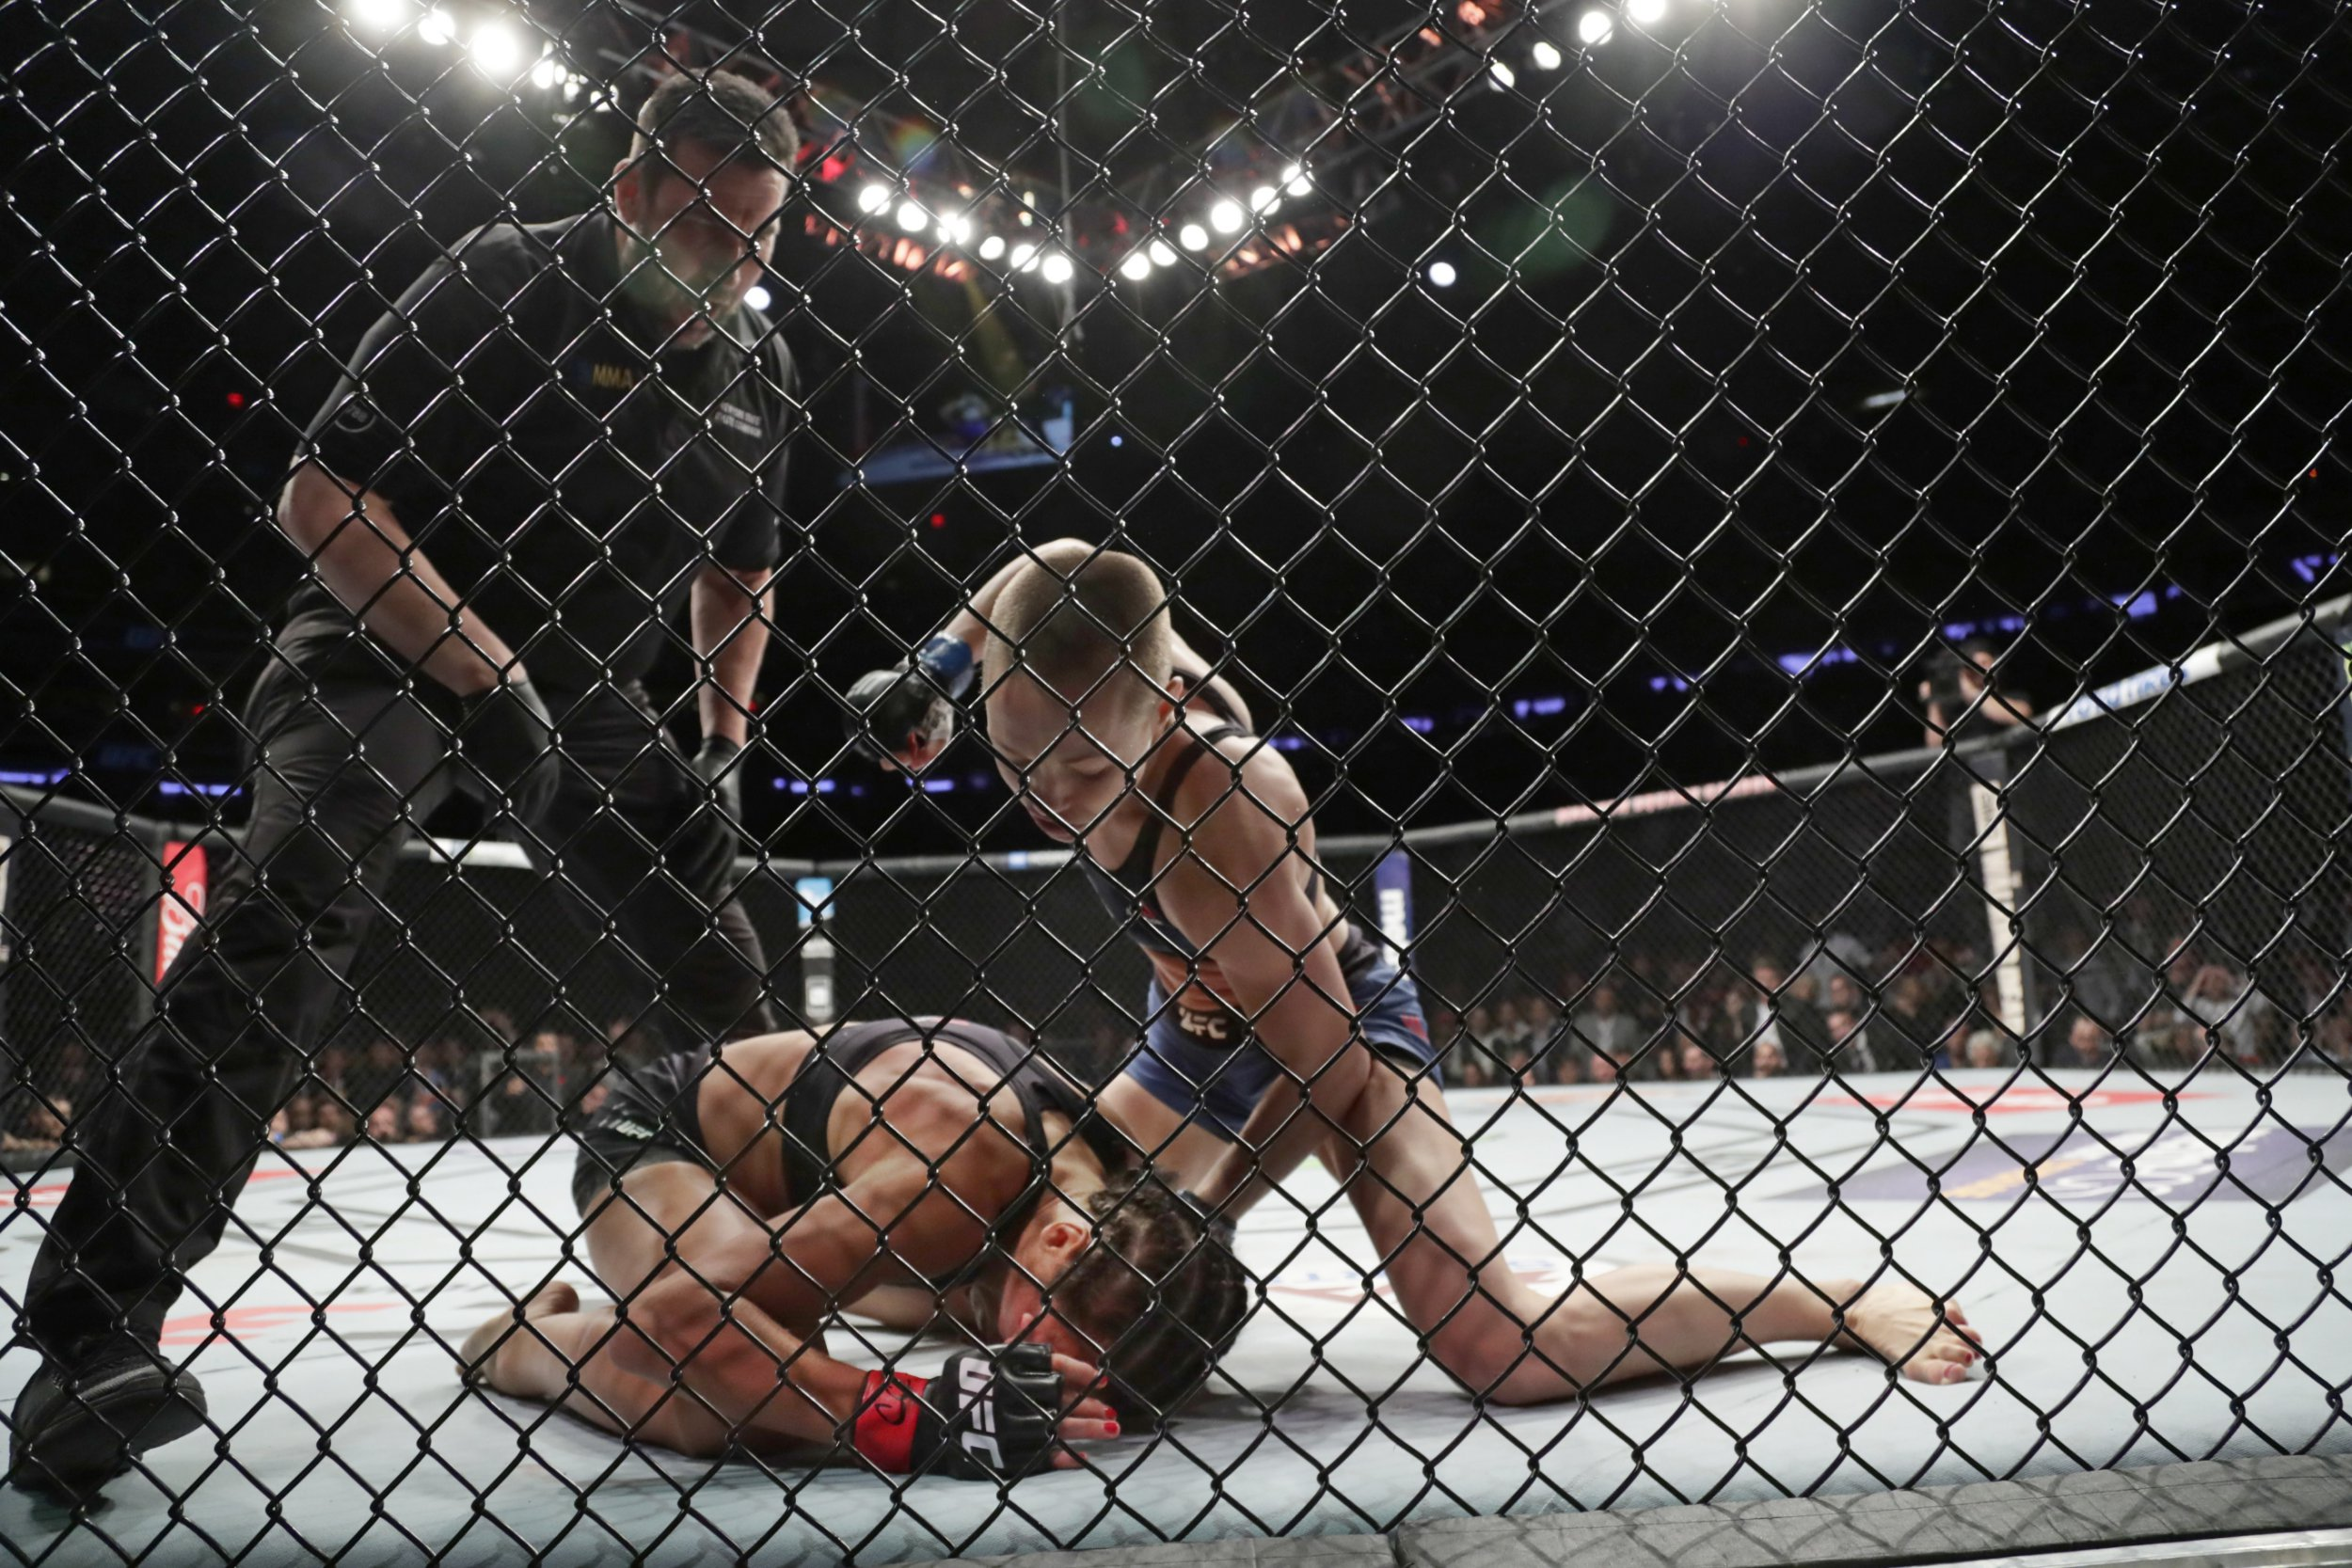 Joanna Jedrzejczyk denies tapping out to Rose Namajunas in UFC 217 loss